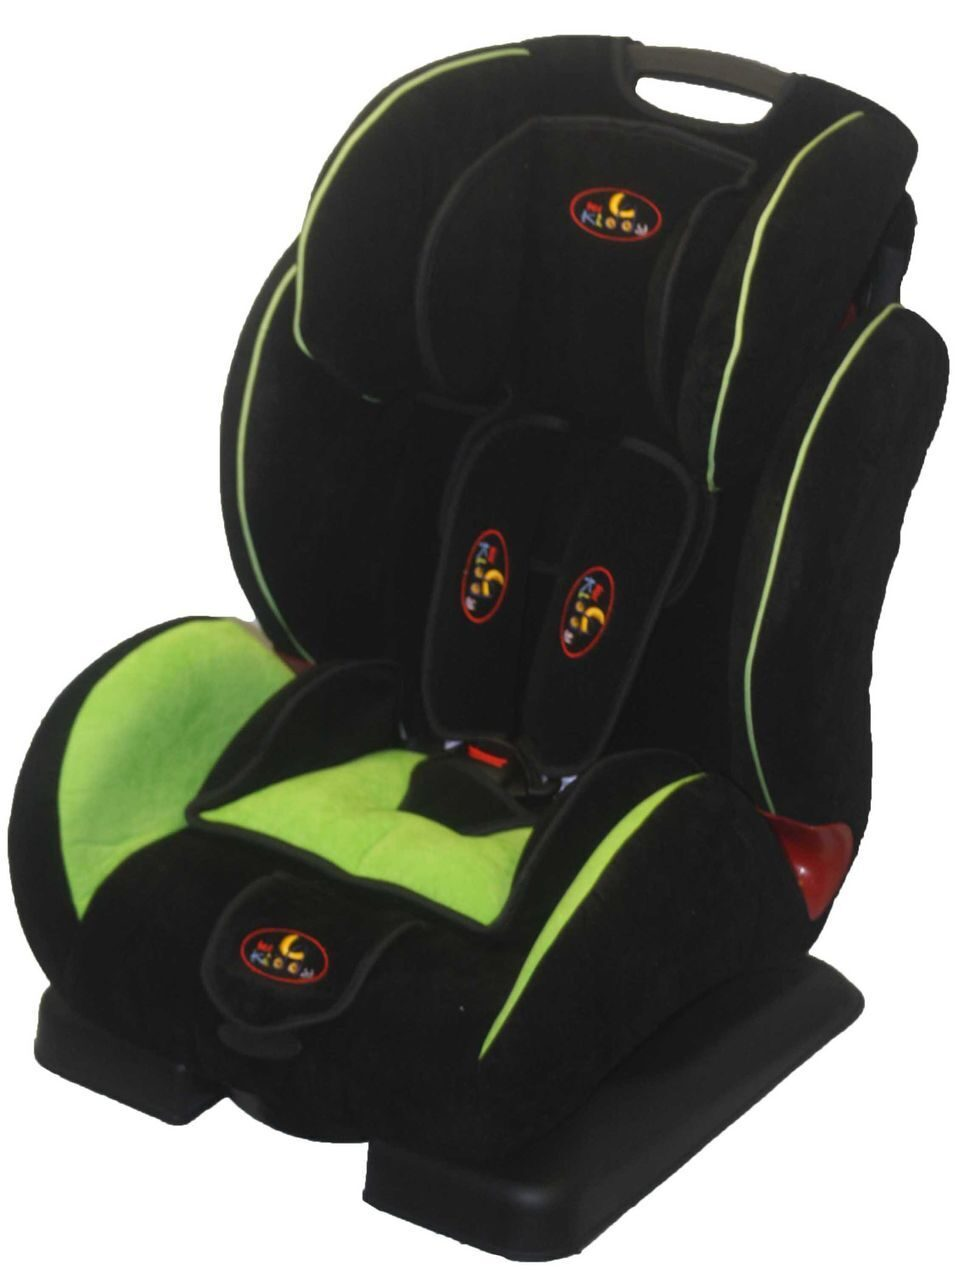 Автокресло ForKiddy Raider   Green